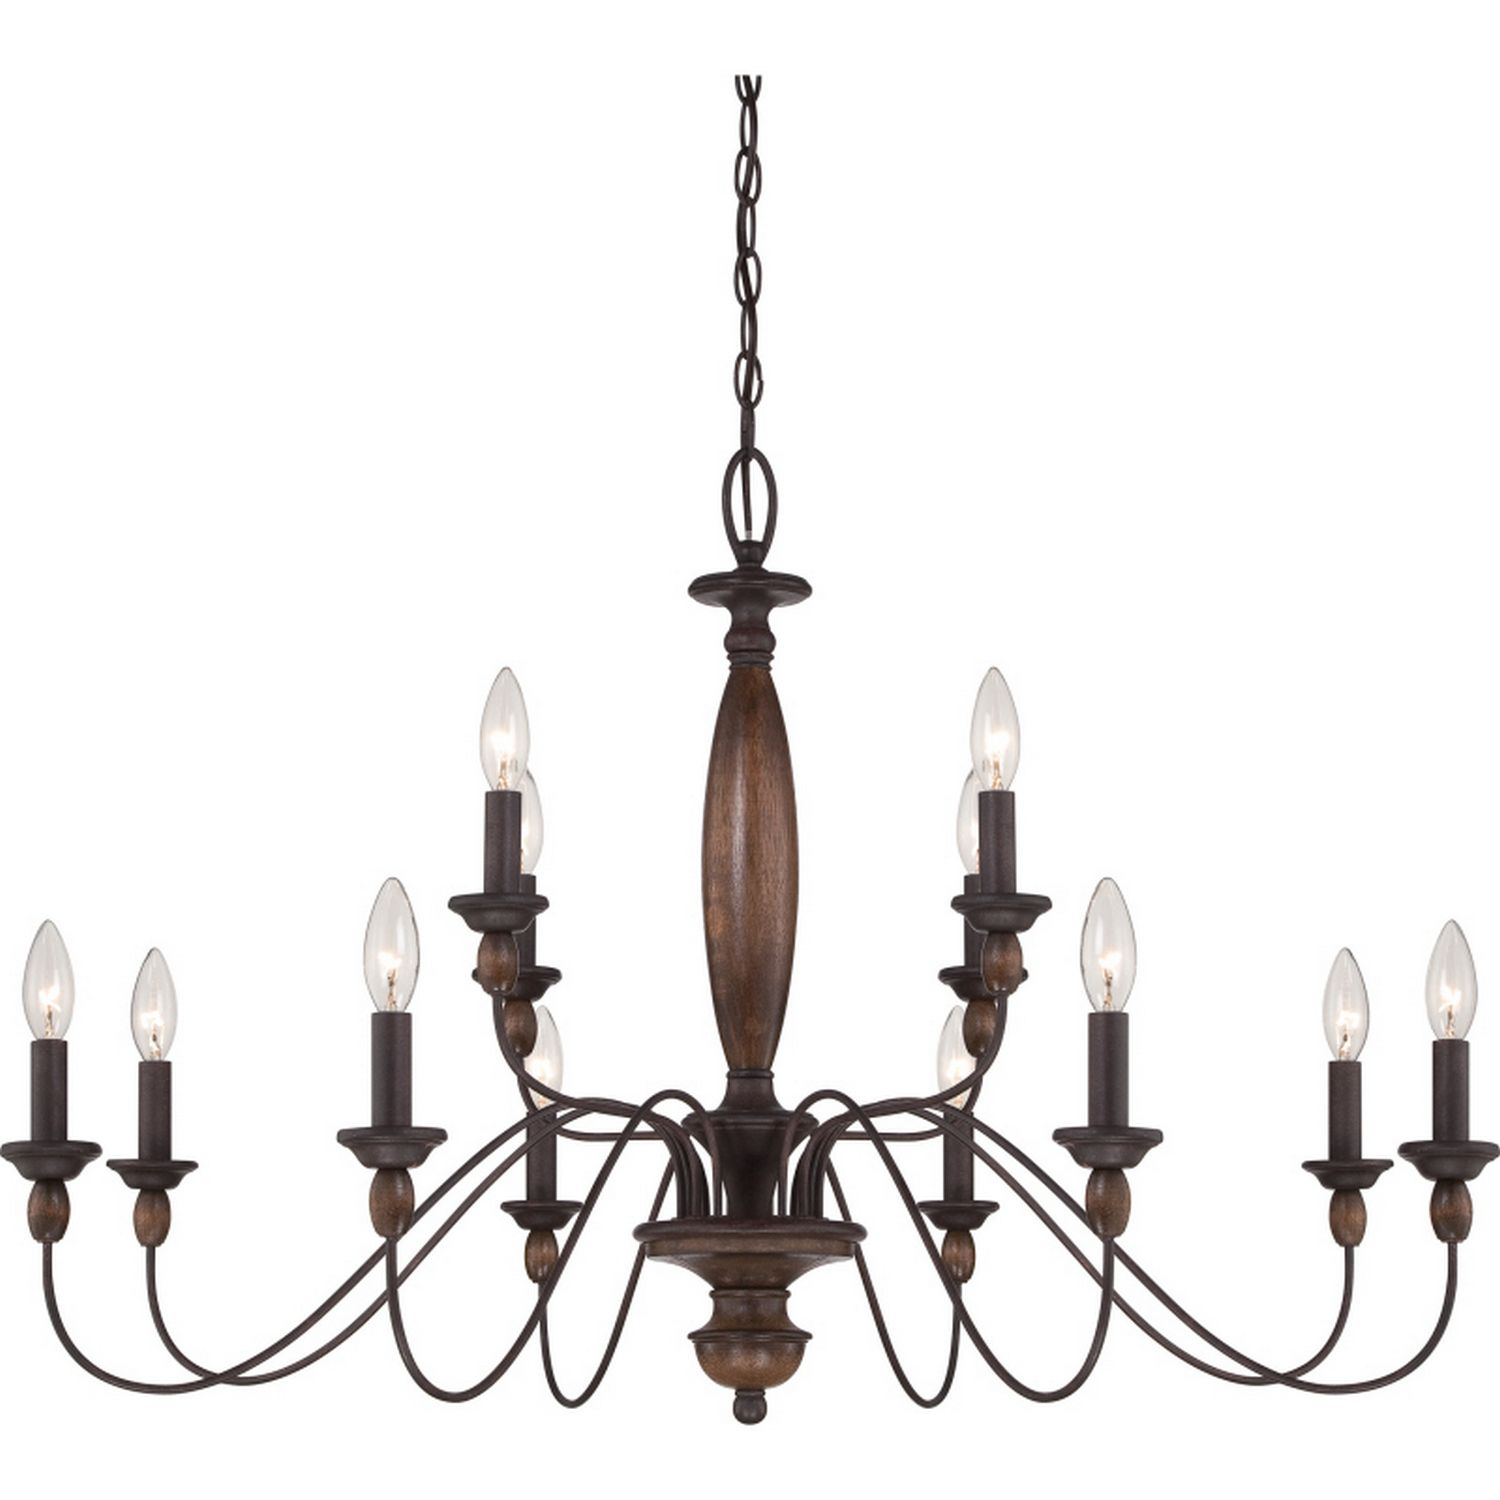 of lights tuscany tuscan chandelier fixtures style crystal